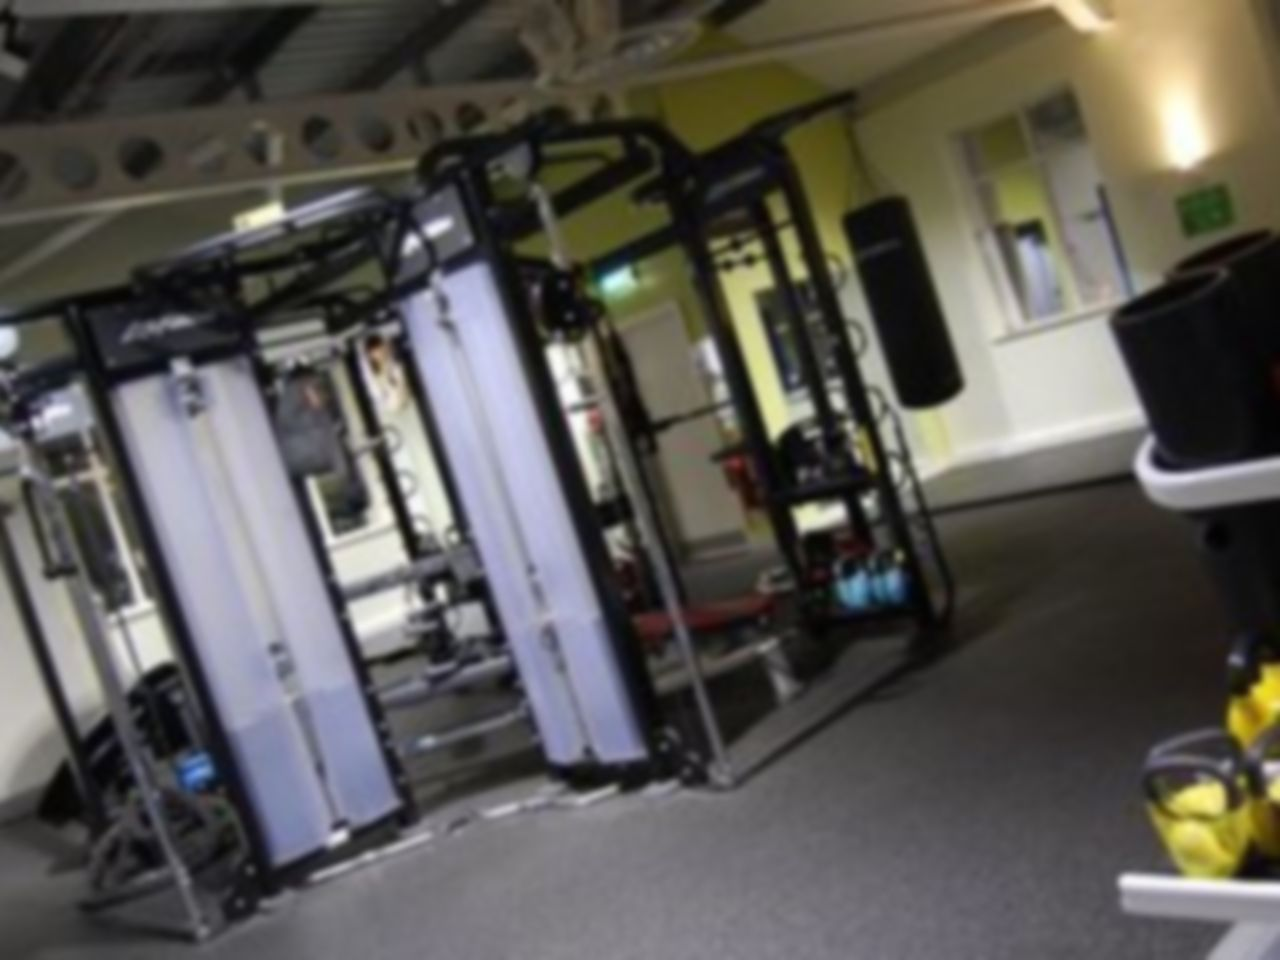 Nuffield health letchworth garden city fitness wellbeing gym flexible gym passes sg6 letchworth for Letchworth swimming pool prices